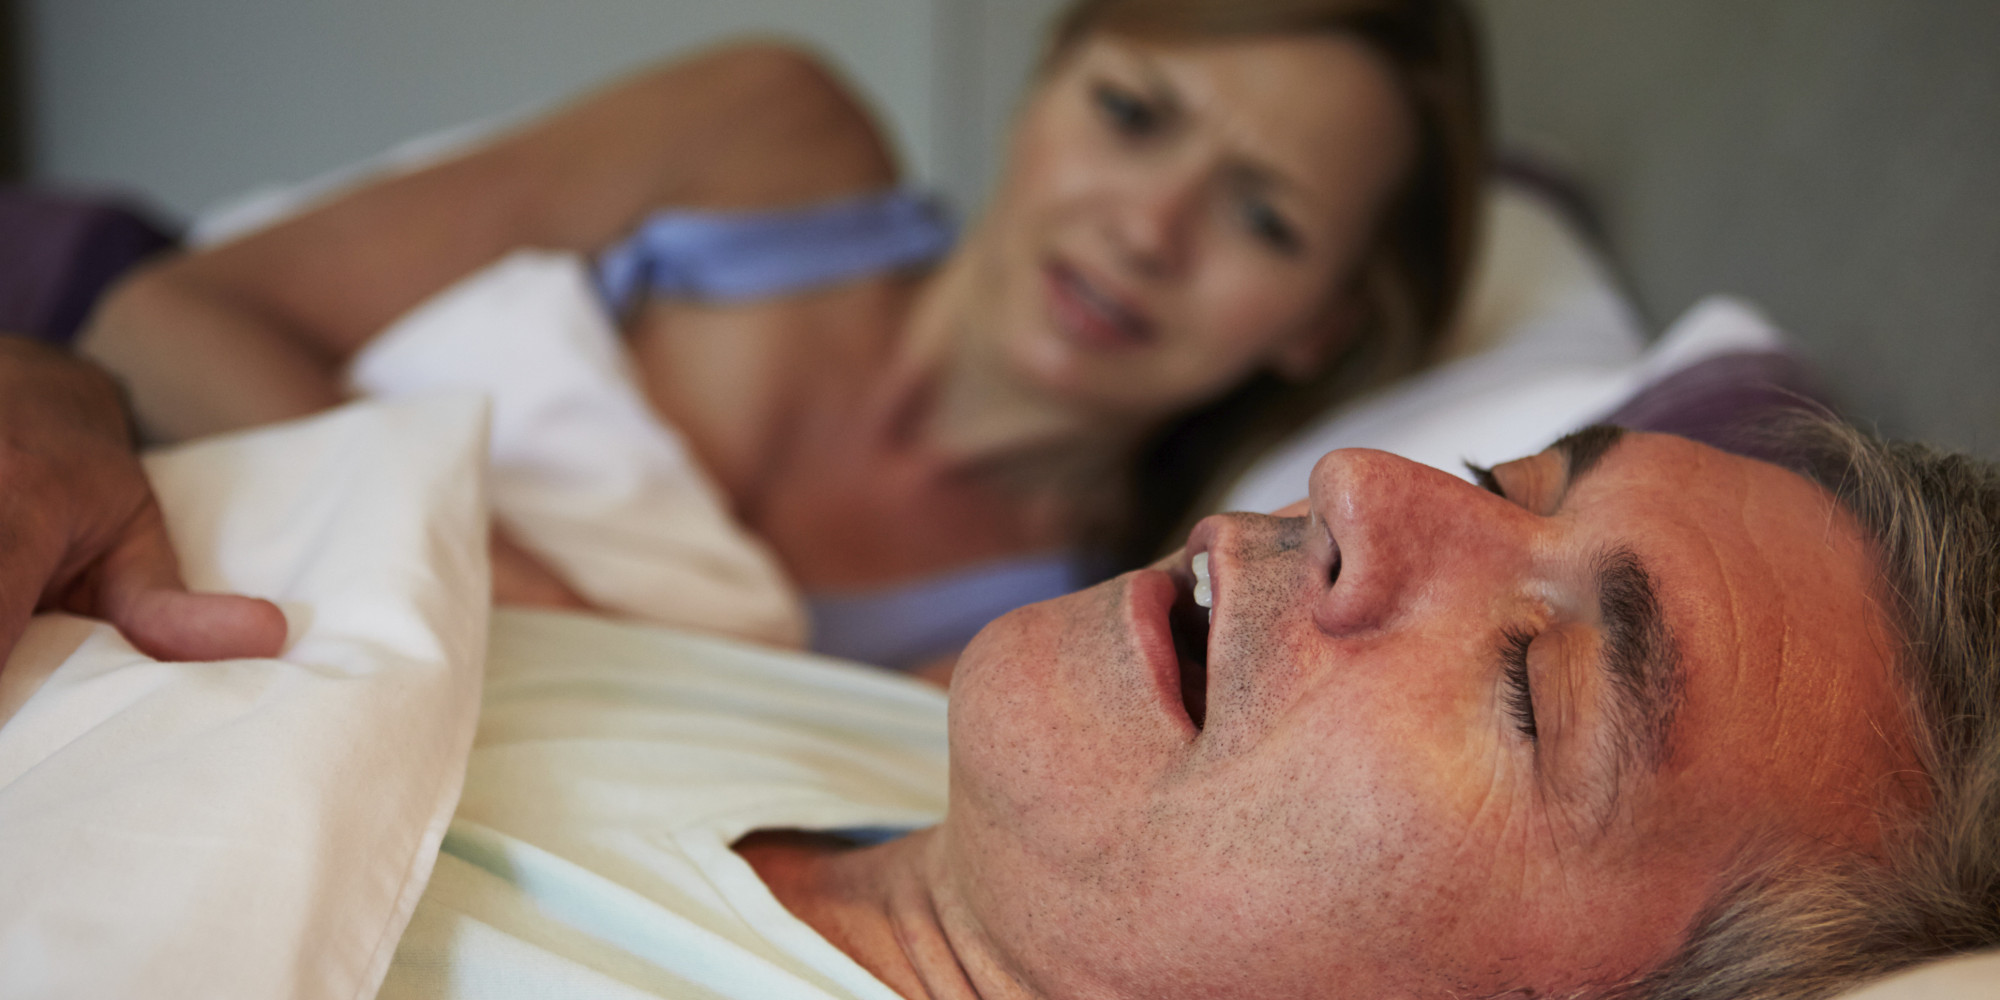 How to Stop/Reduce Snoring : Home Remedies For Snoring